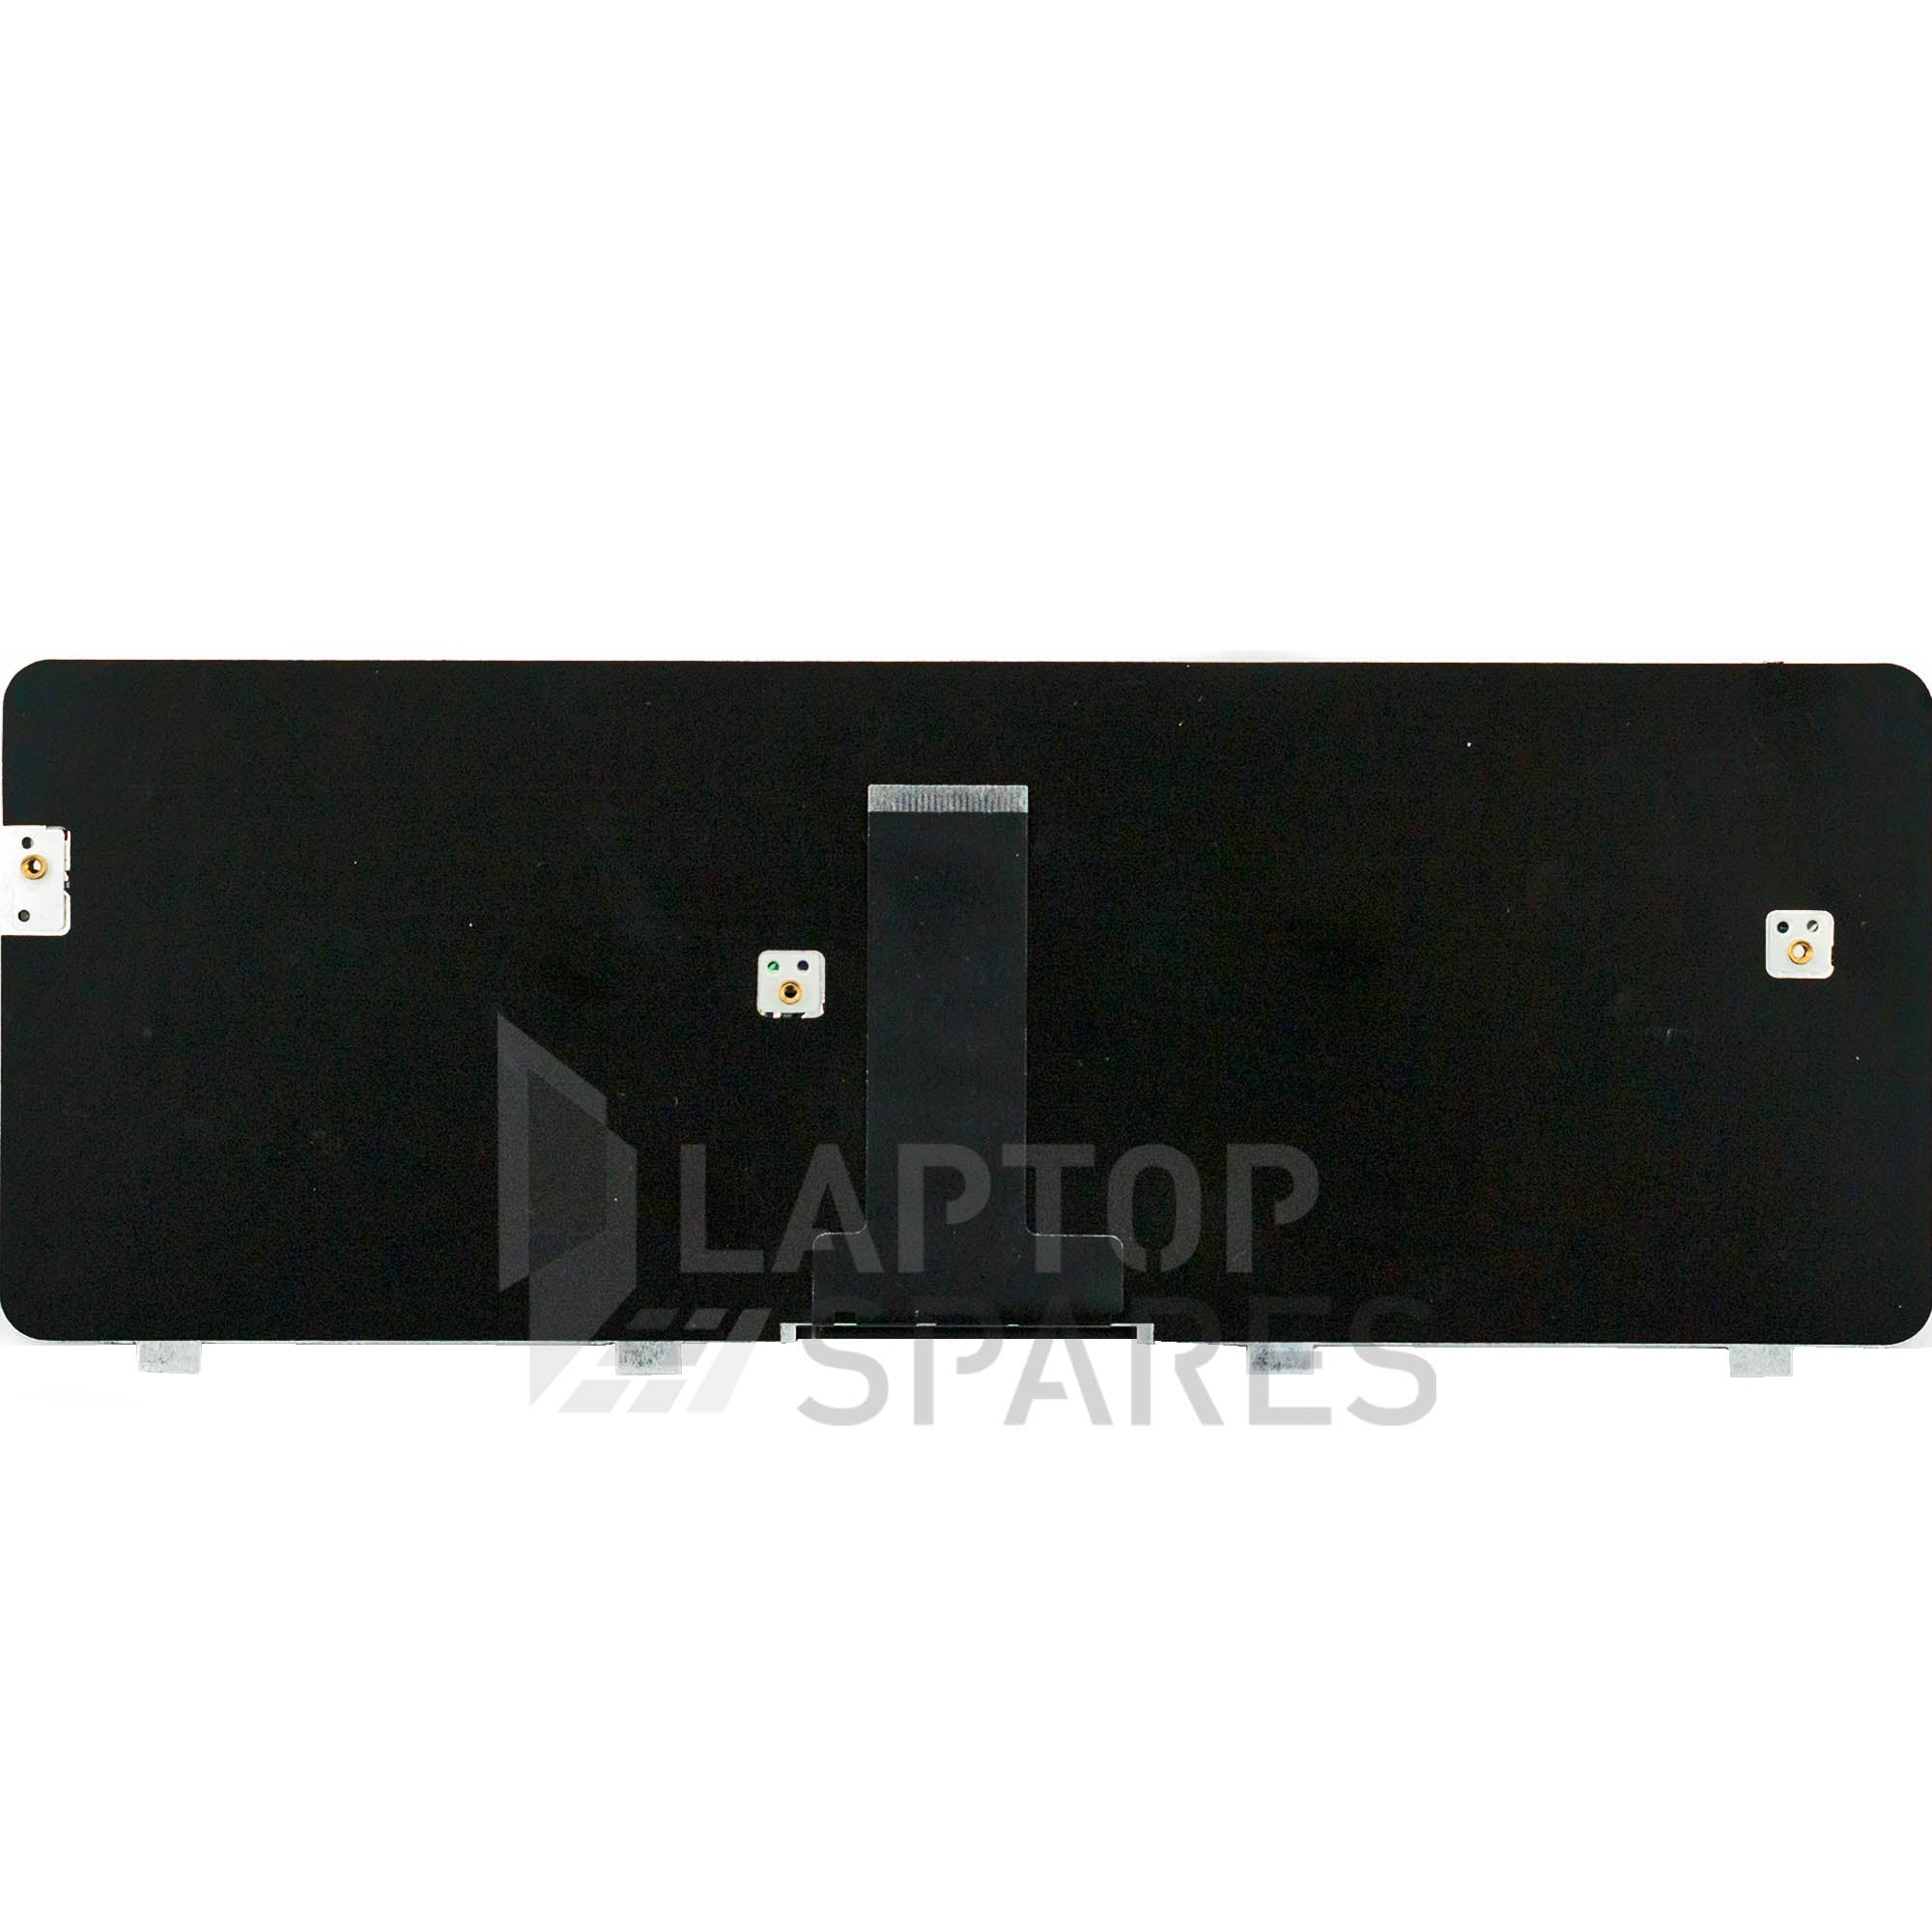 HP Compaq CQ40 CQ45 Laptop Keyboard